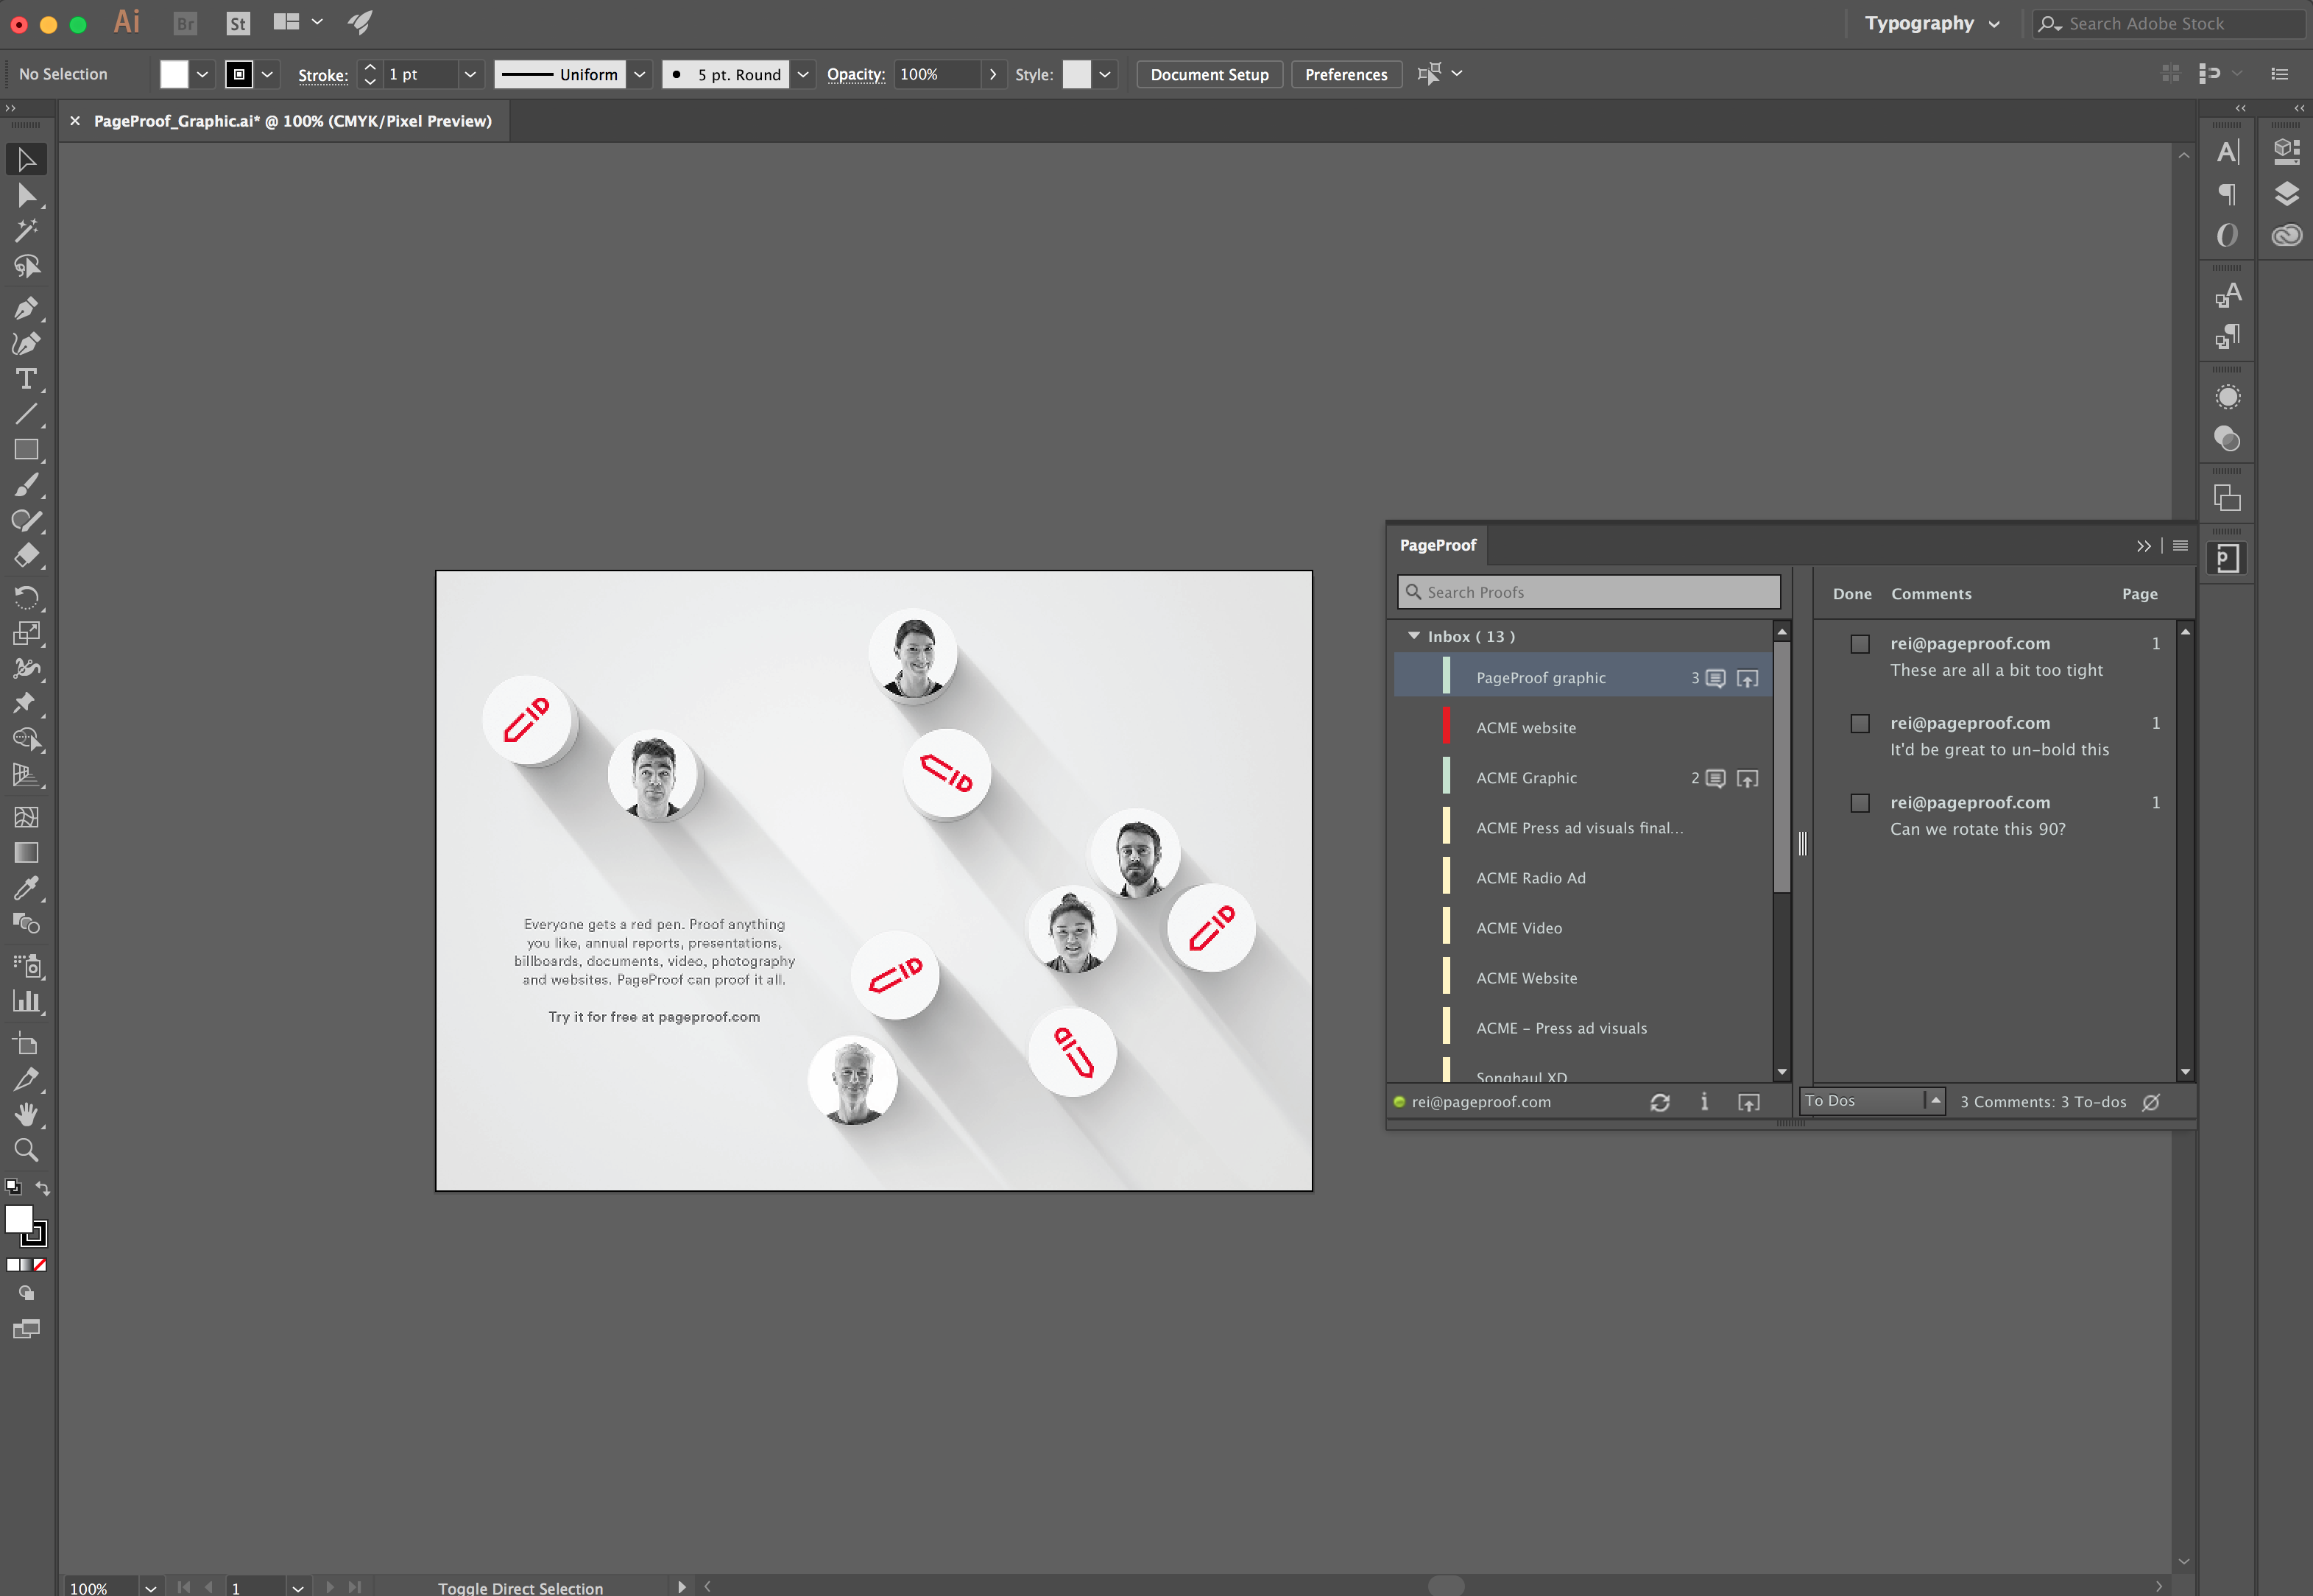 The PageProof panel in Adobe Illustrator